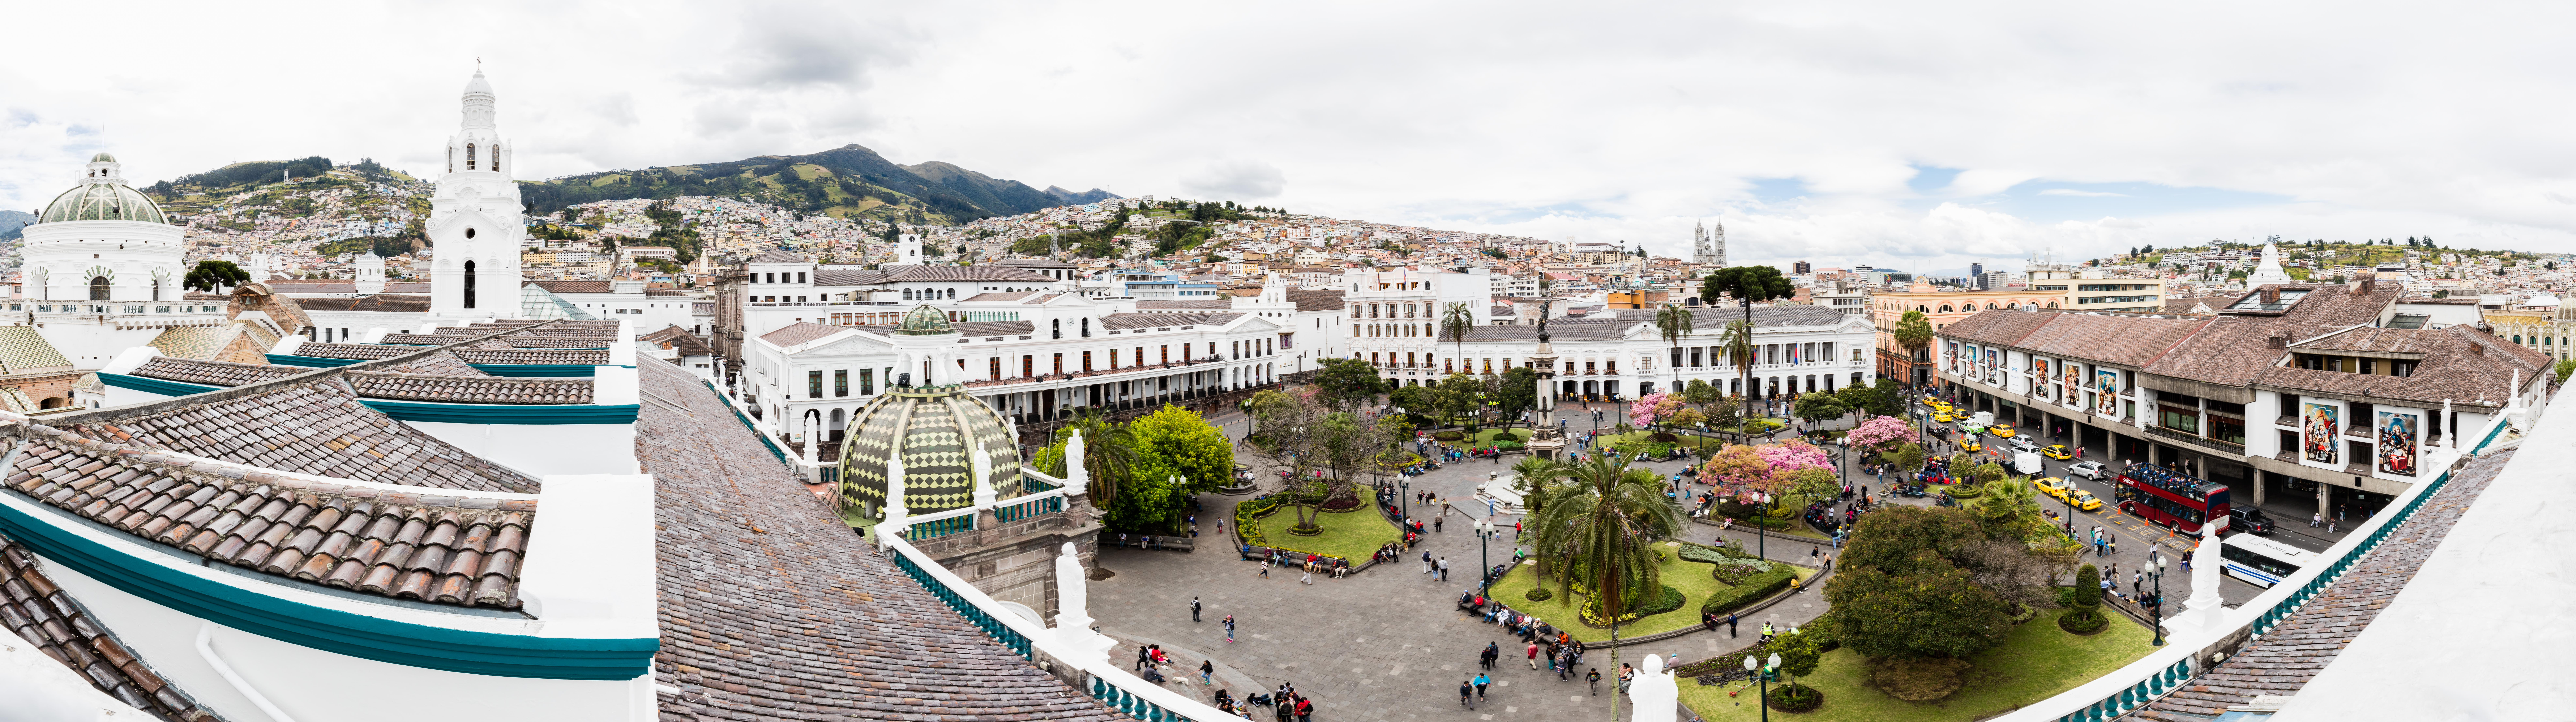 quito dating Answer 1 of 25: my husband and i spent a total of 10 nights in quito before and after a galapagos trip in february and march of 2012 i had also read about all the safety concerns, and though i am an experienced traveller, many of the reports had me quite scared.